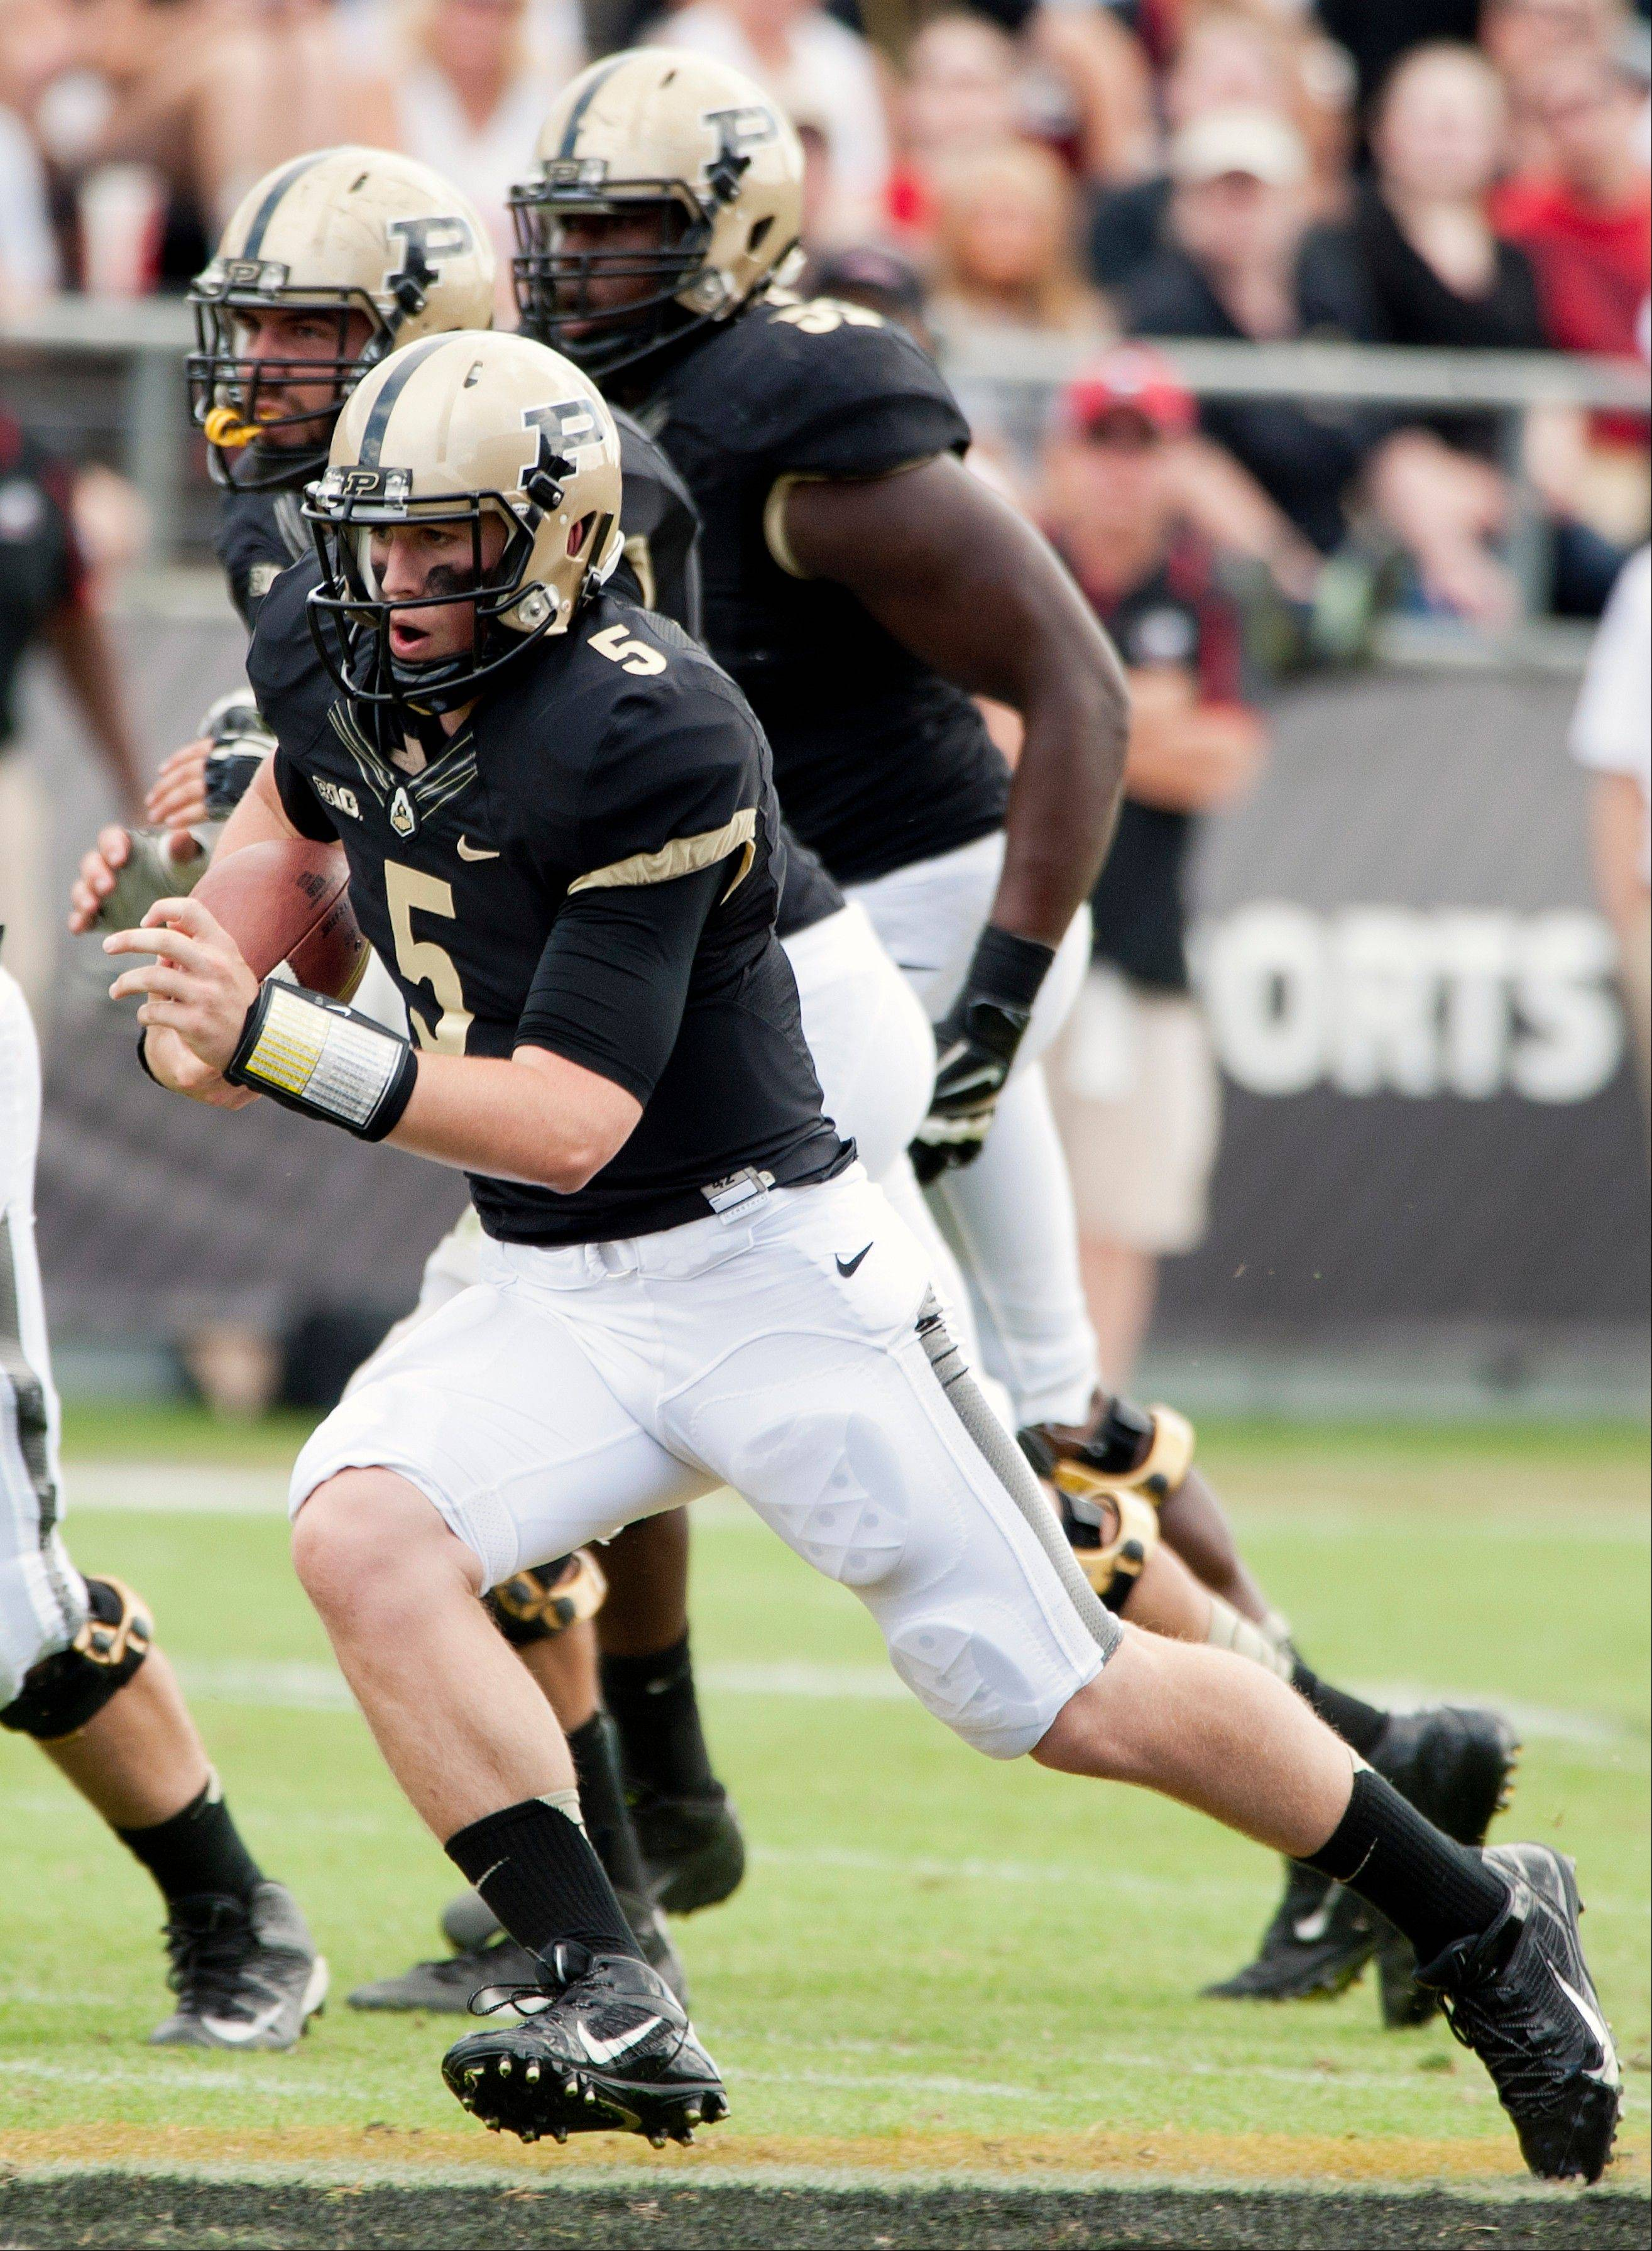 Purdue quarterback Danny Etling scrambles with the ball against Northern Illinois during last Saturday's game in West Lafayette, Ind.